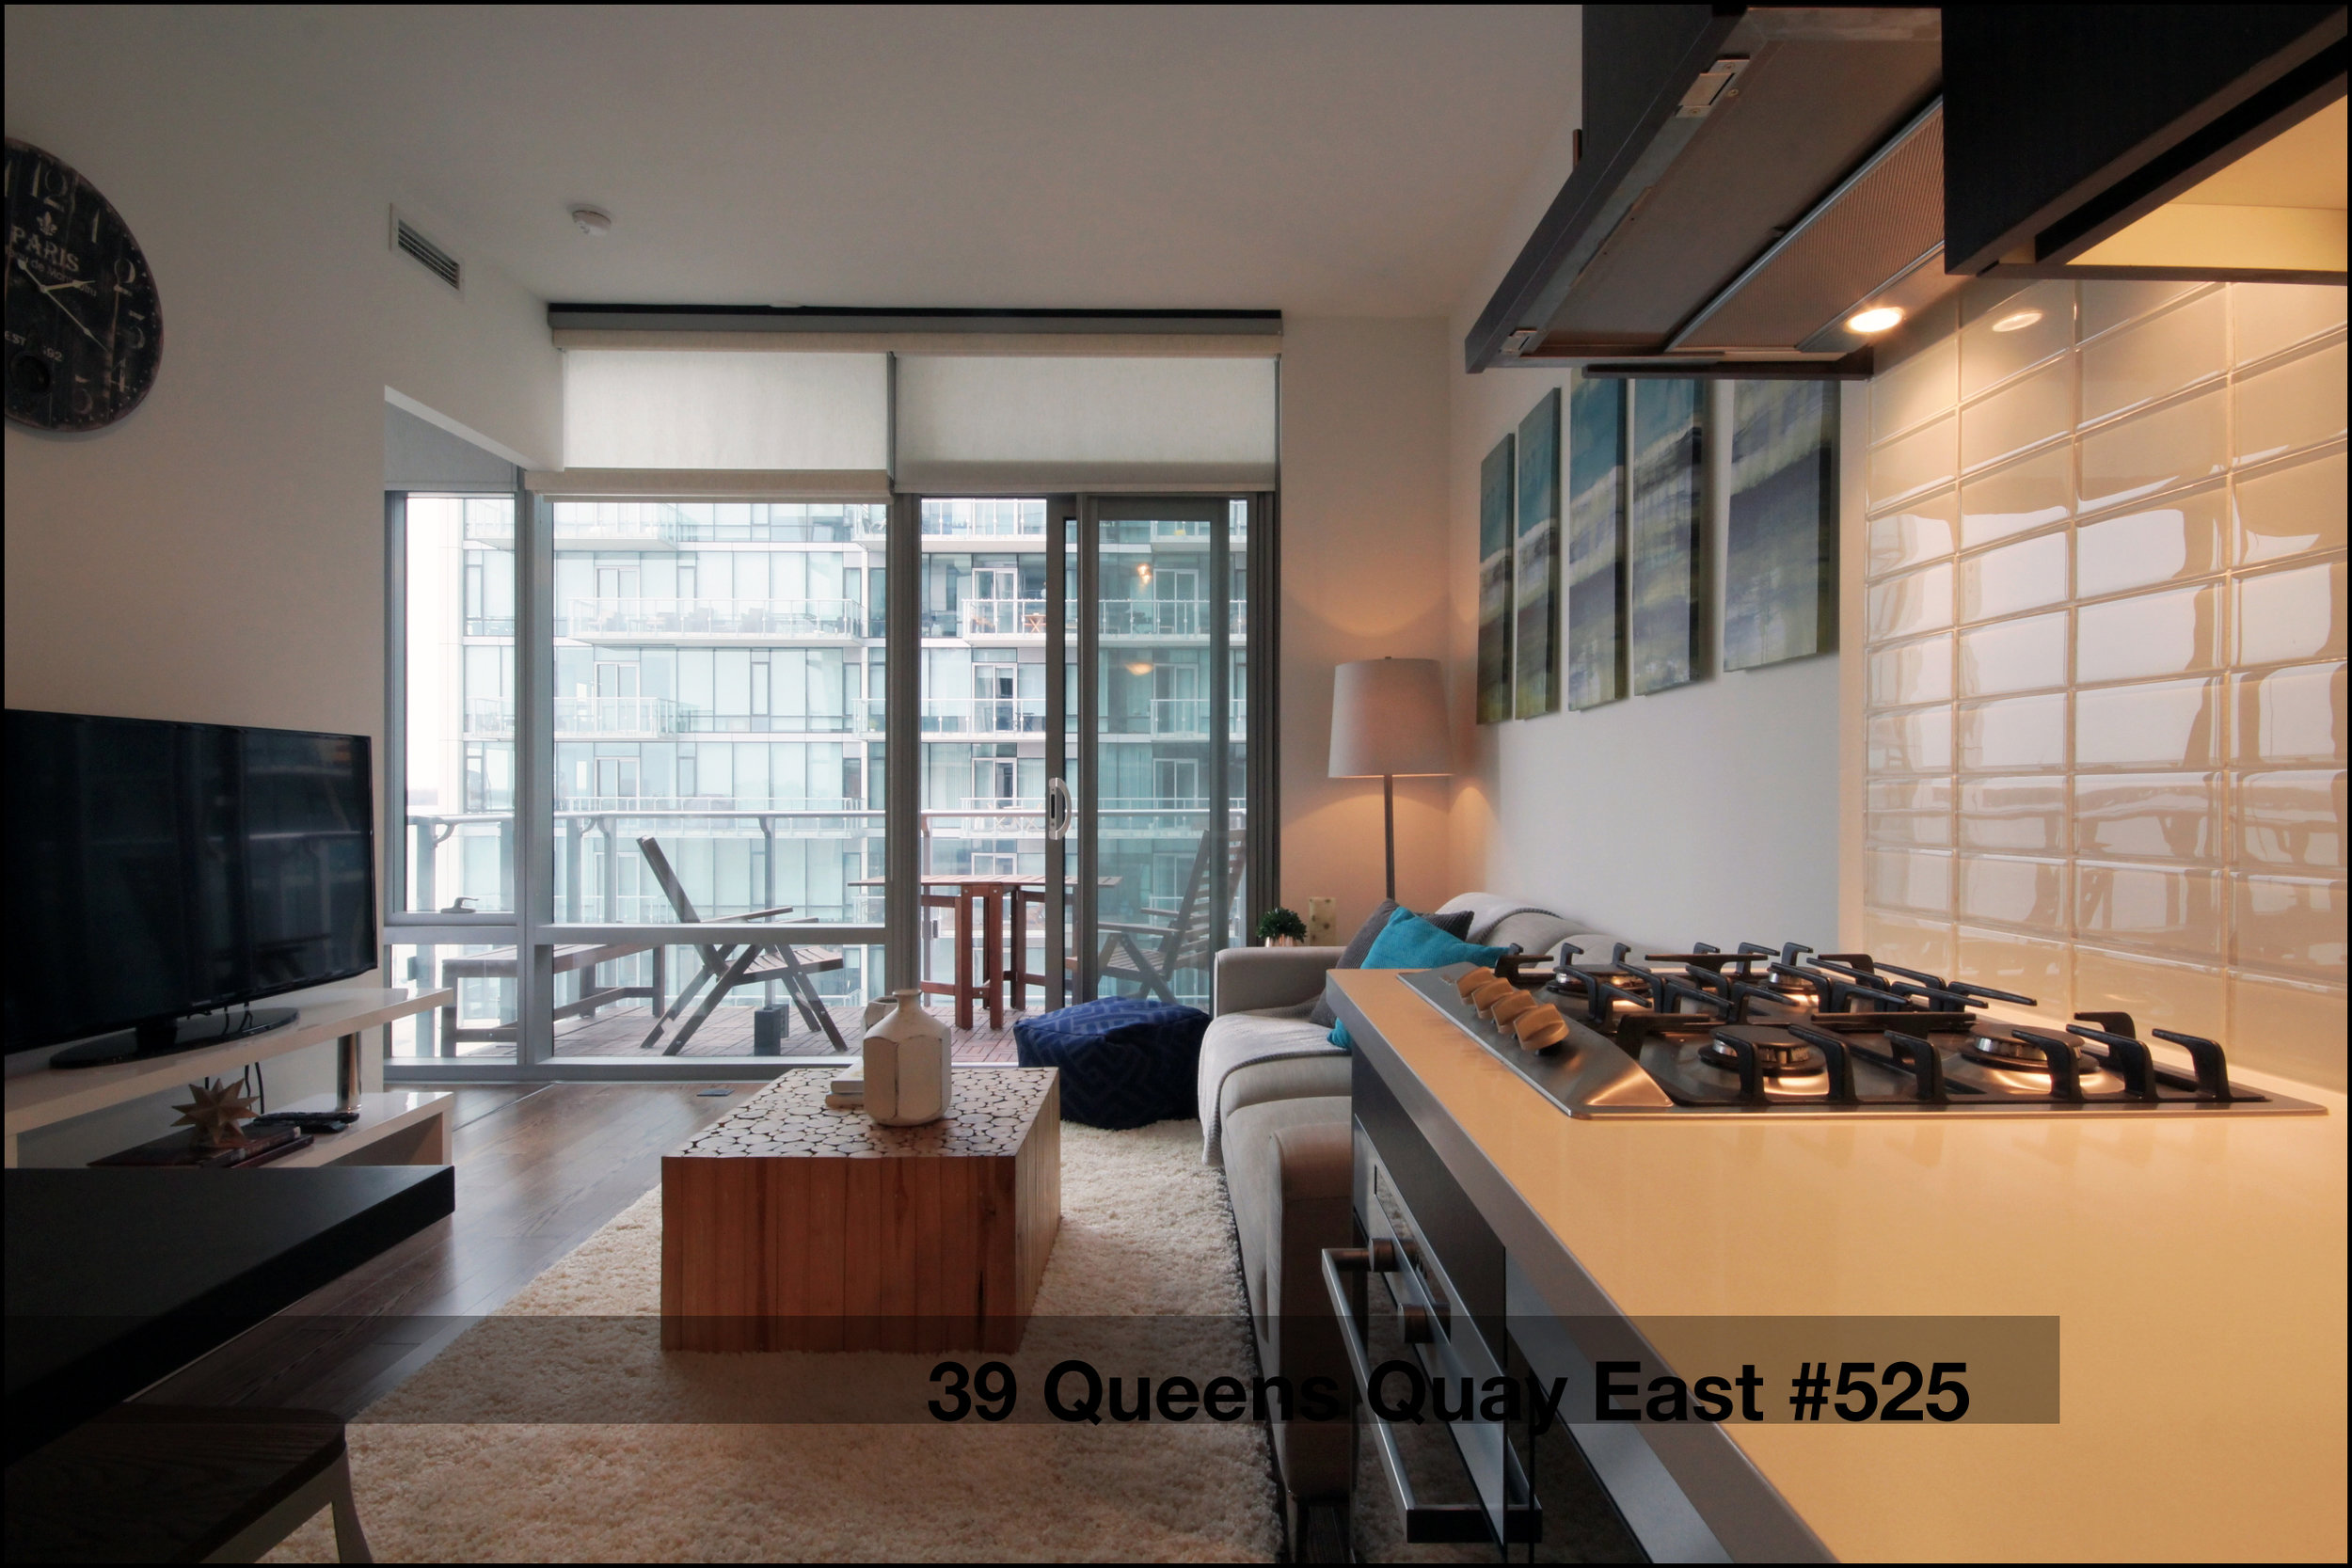 08 Kitchen and Living Room copy.jpg